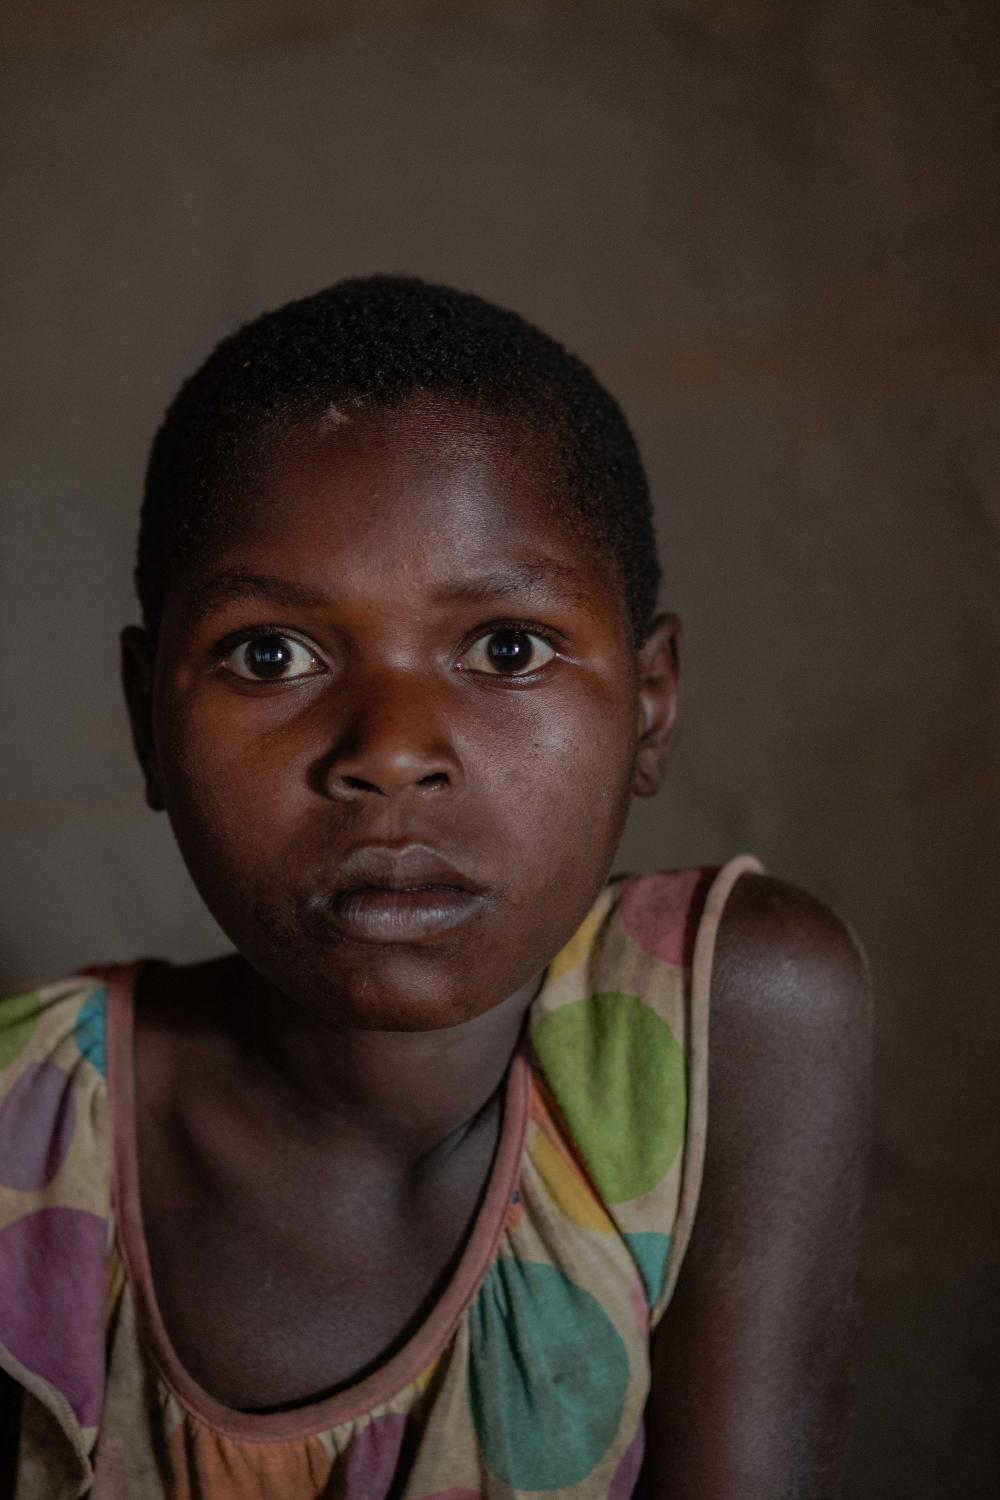 Lakica Barbara, 11 has been suffering from nodding syndrome since she was 4 years old.